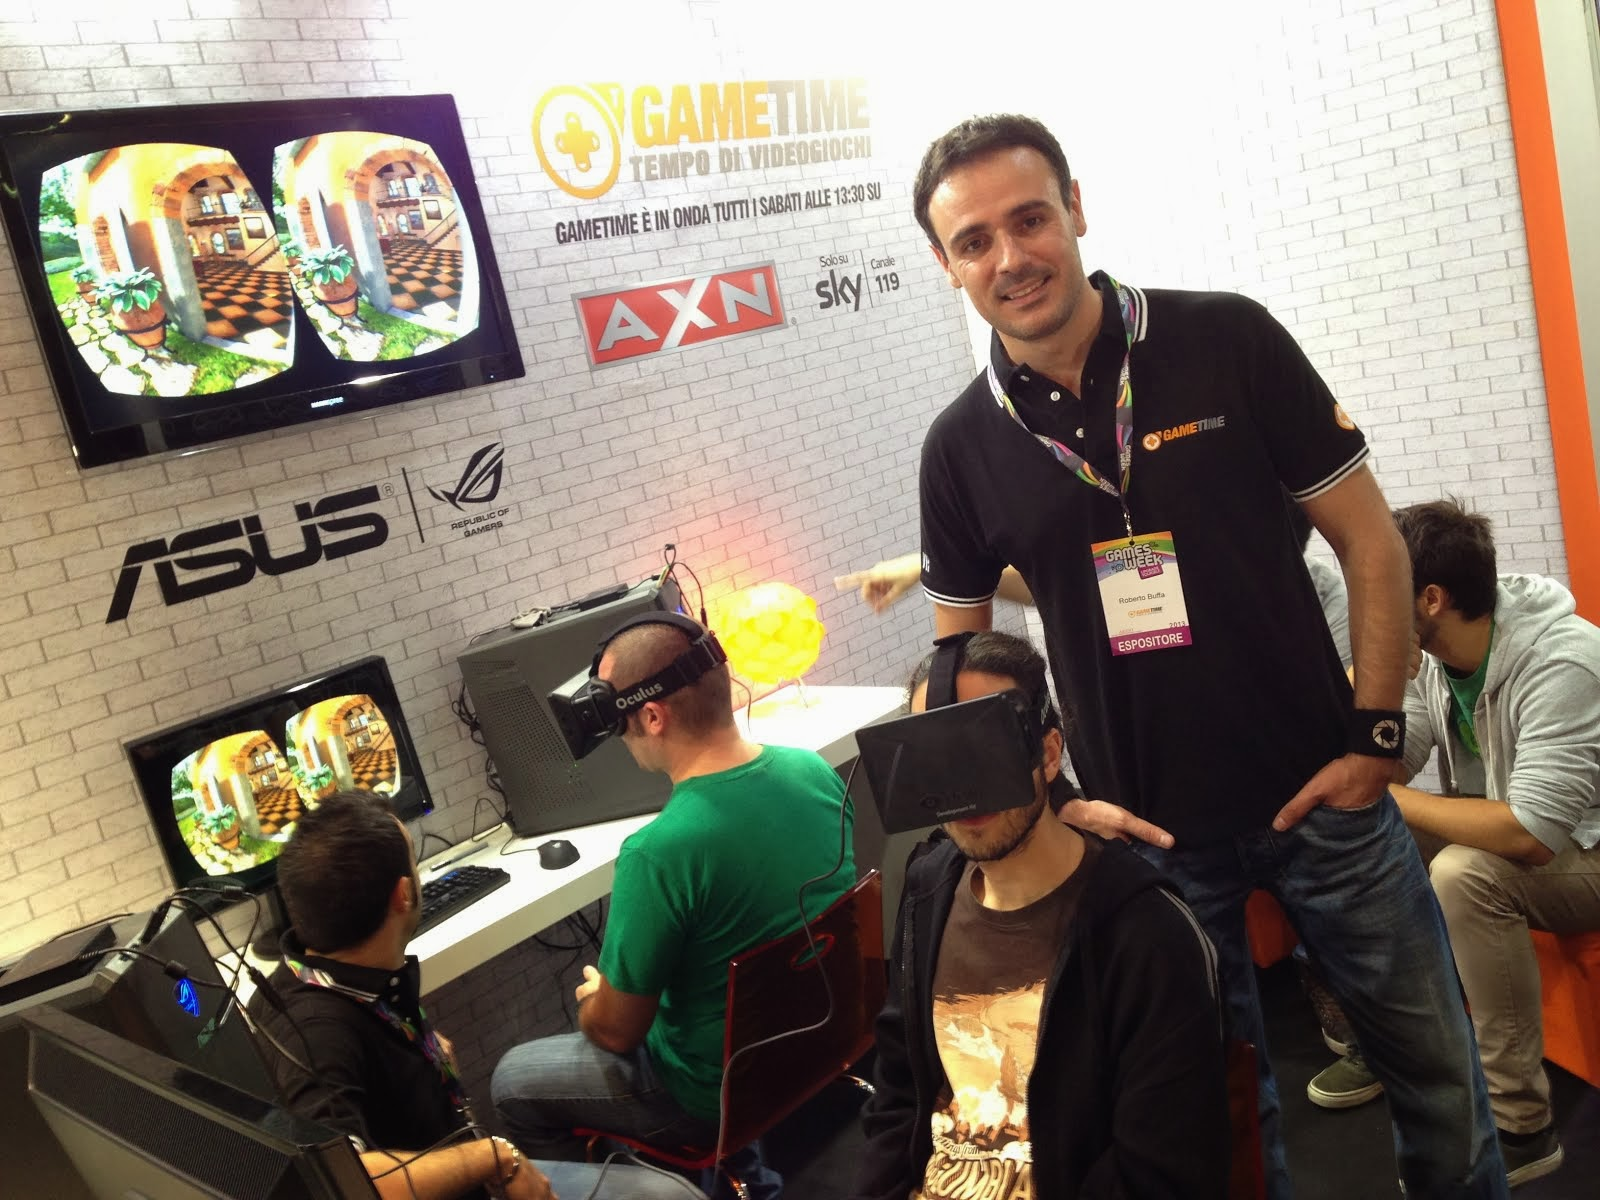 Roberto+Buffa_Gamesweek-795472.JPG. (1600×1200)